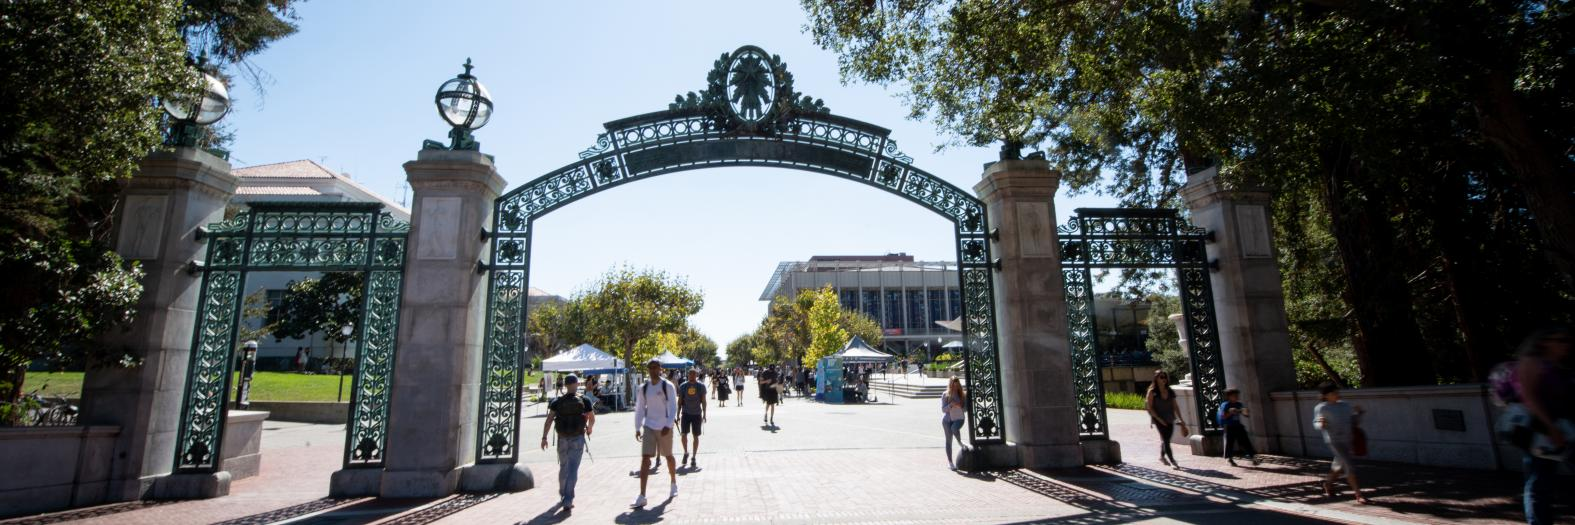 campus scene at Sather Gate